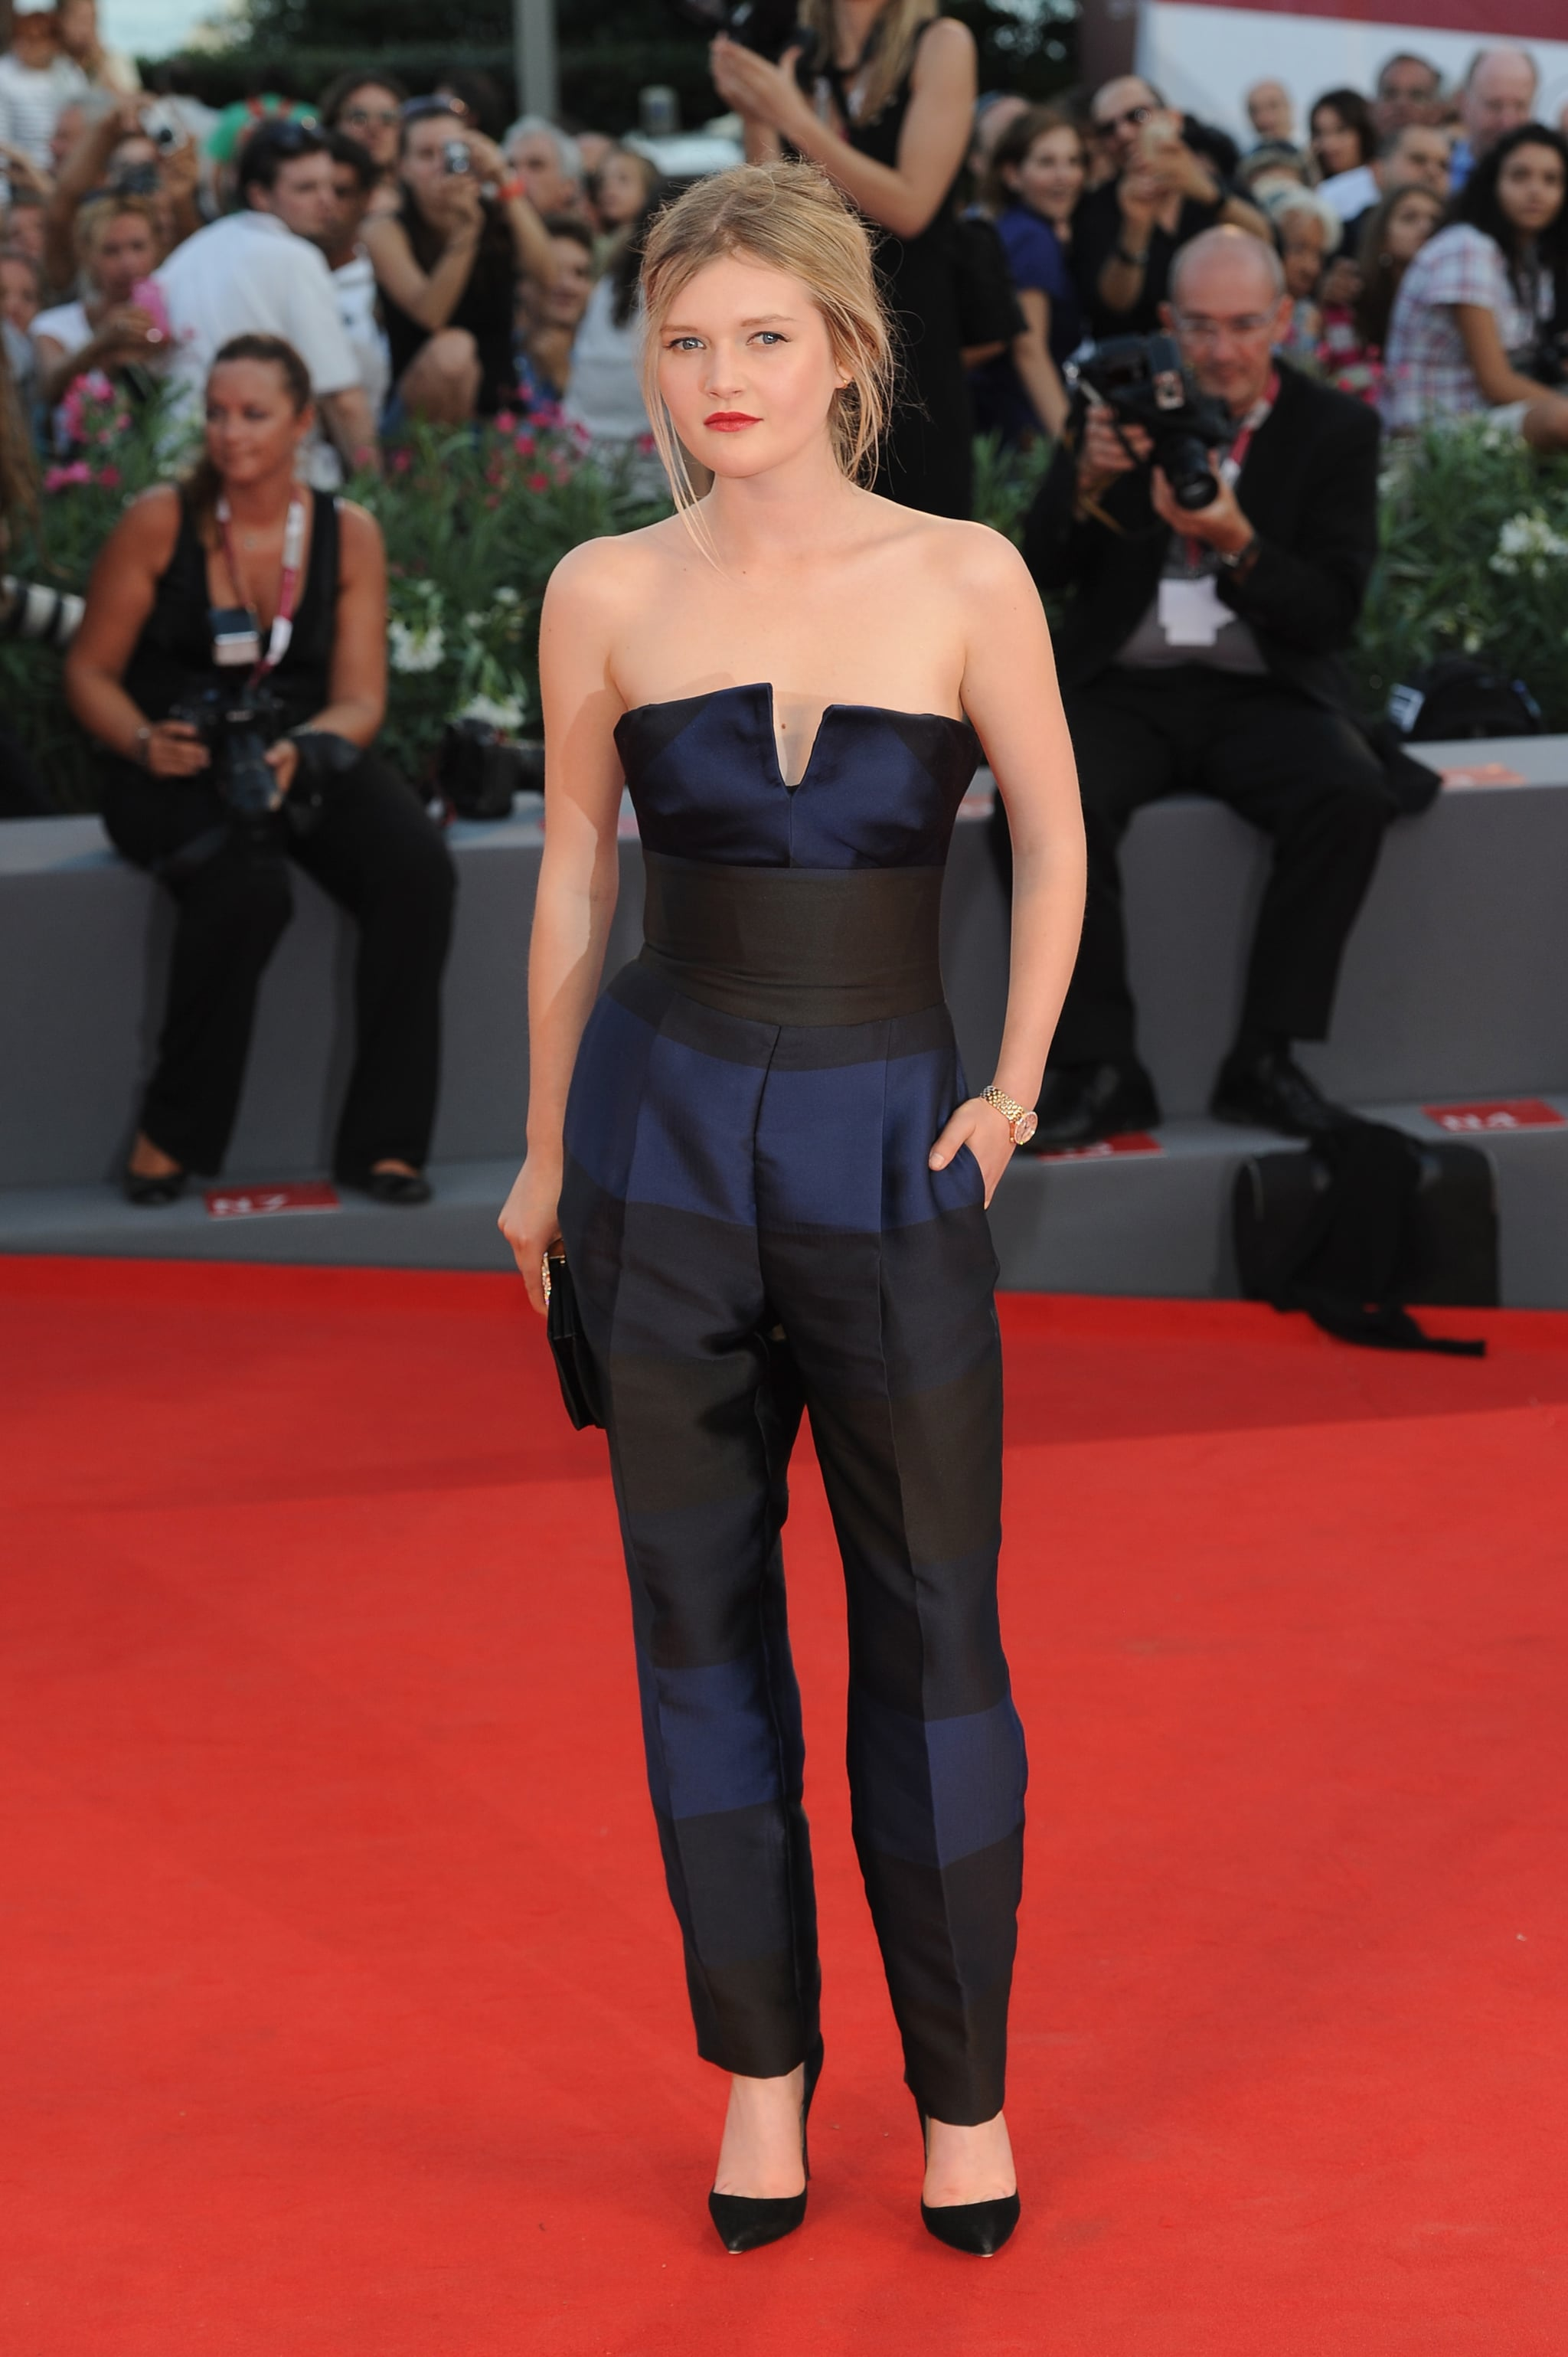 Sophie Kennedy Clark arrived in a Stella McCartney jumpsuit and minimalist black accessories on the Philomena red carpet at the Venice International Film Festival.